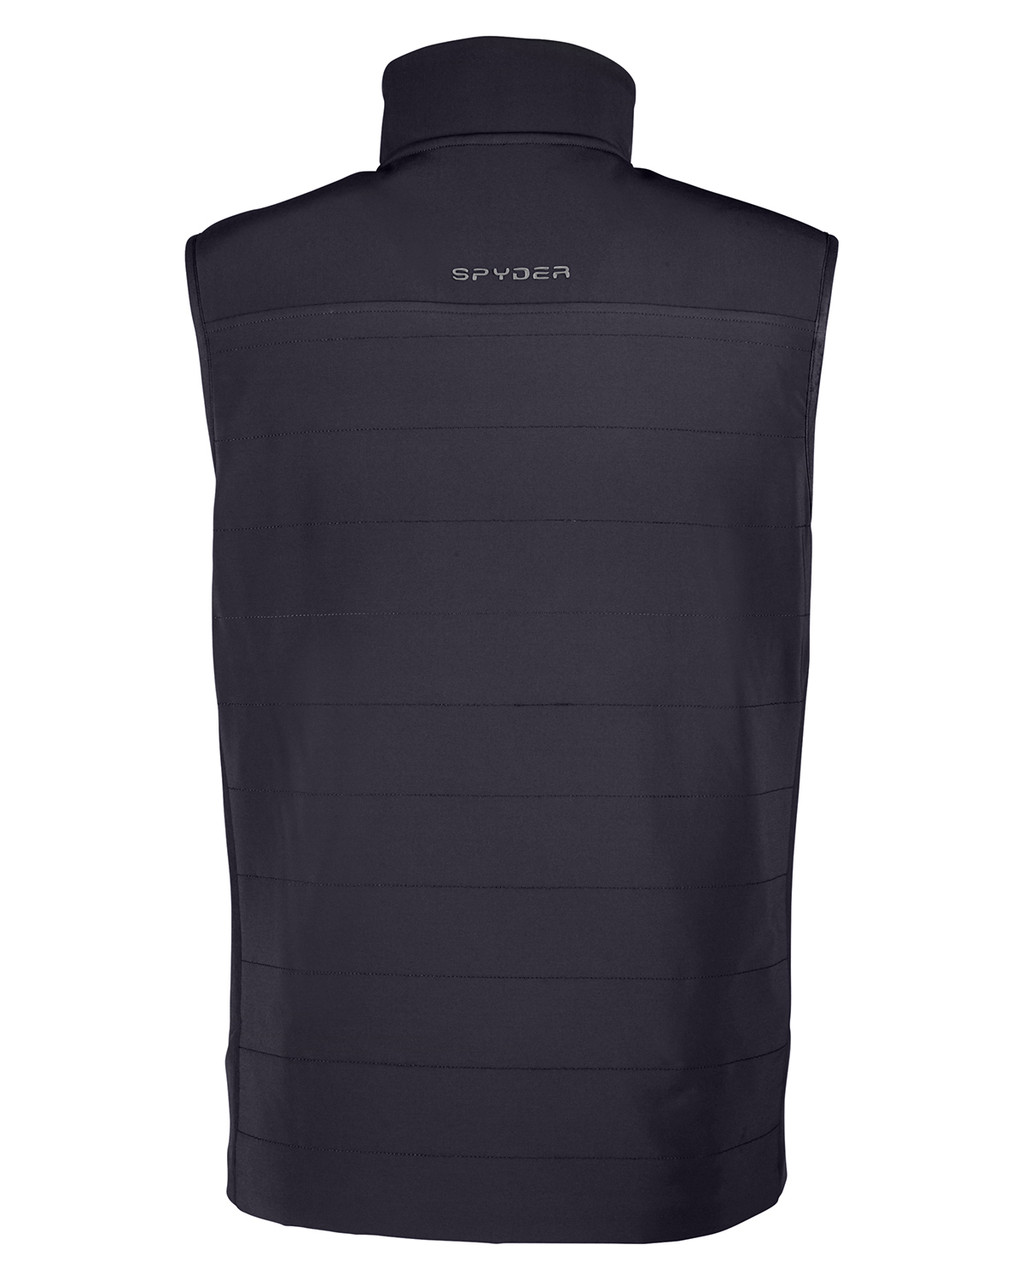 Black - Back, S17028 Spyder Men's Transit Vest | BlankClothing.ca